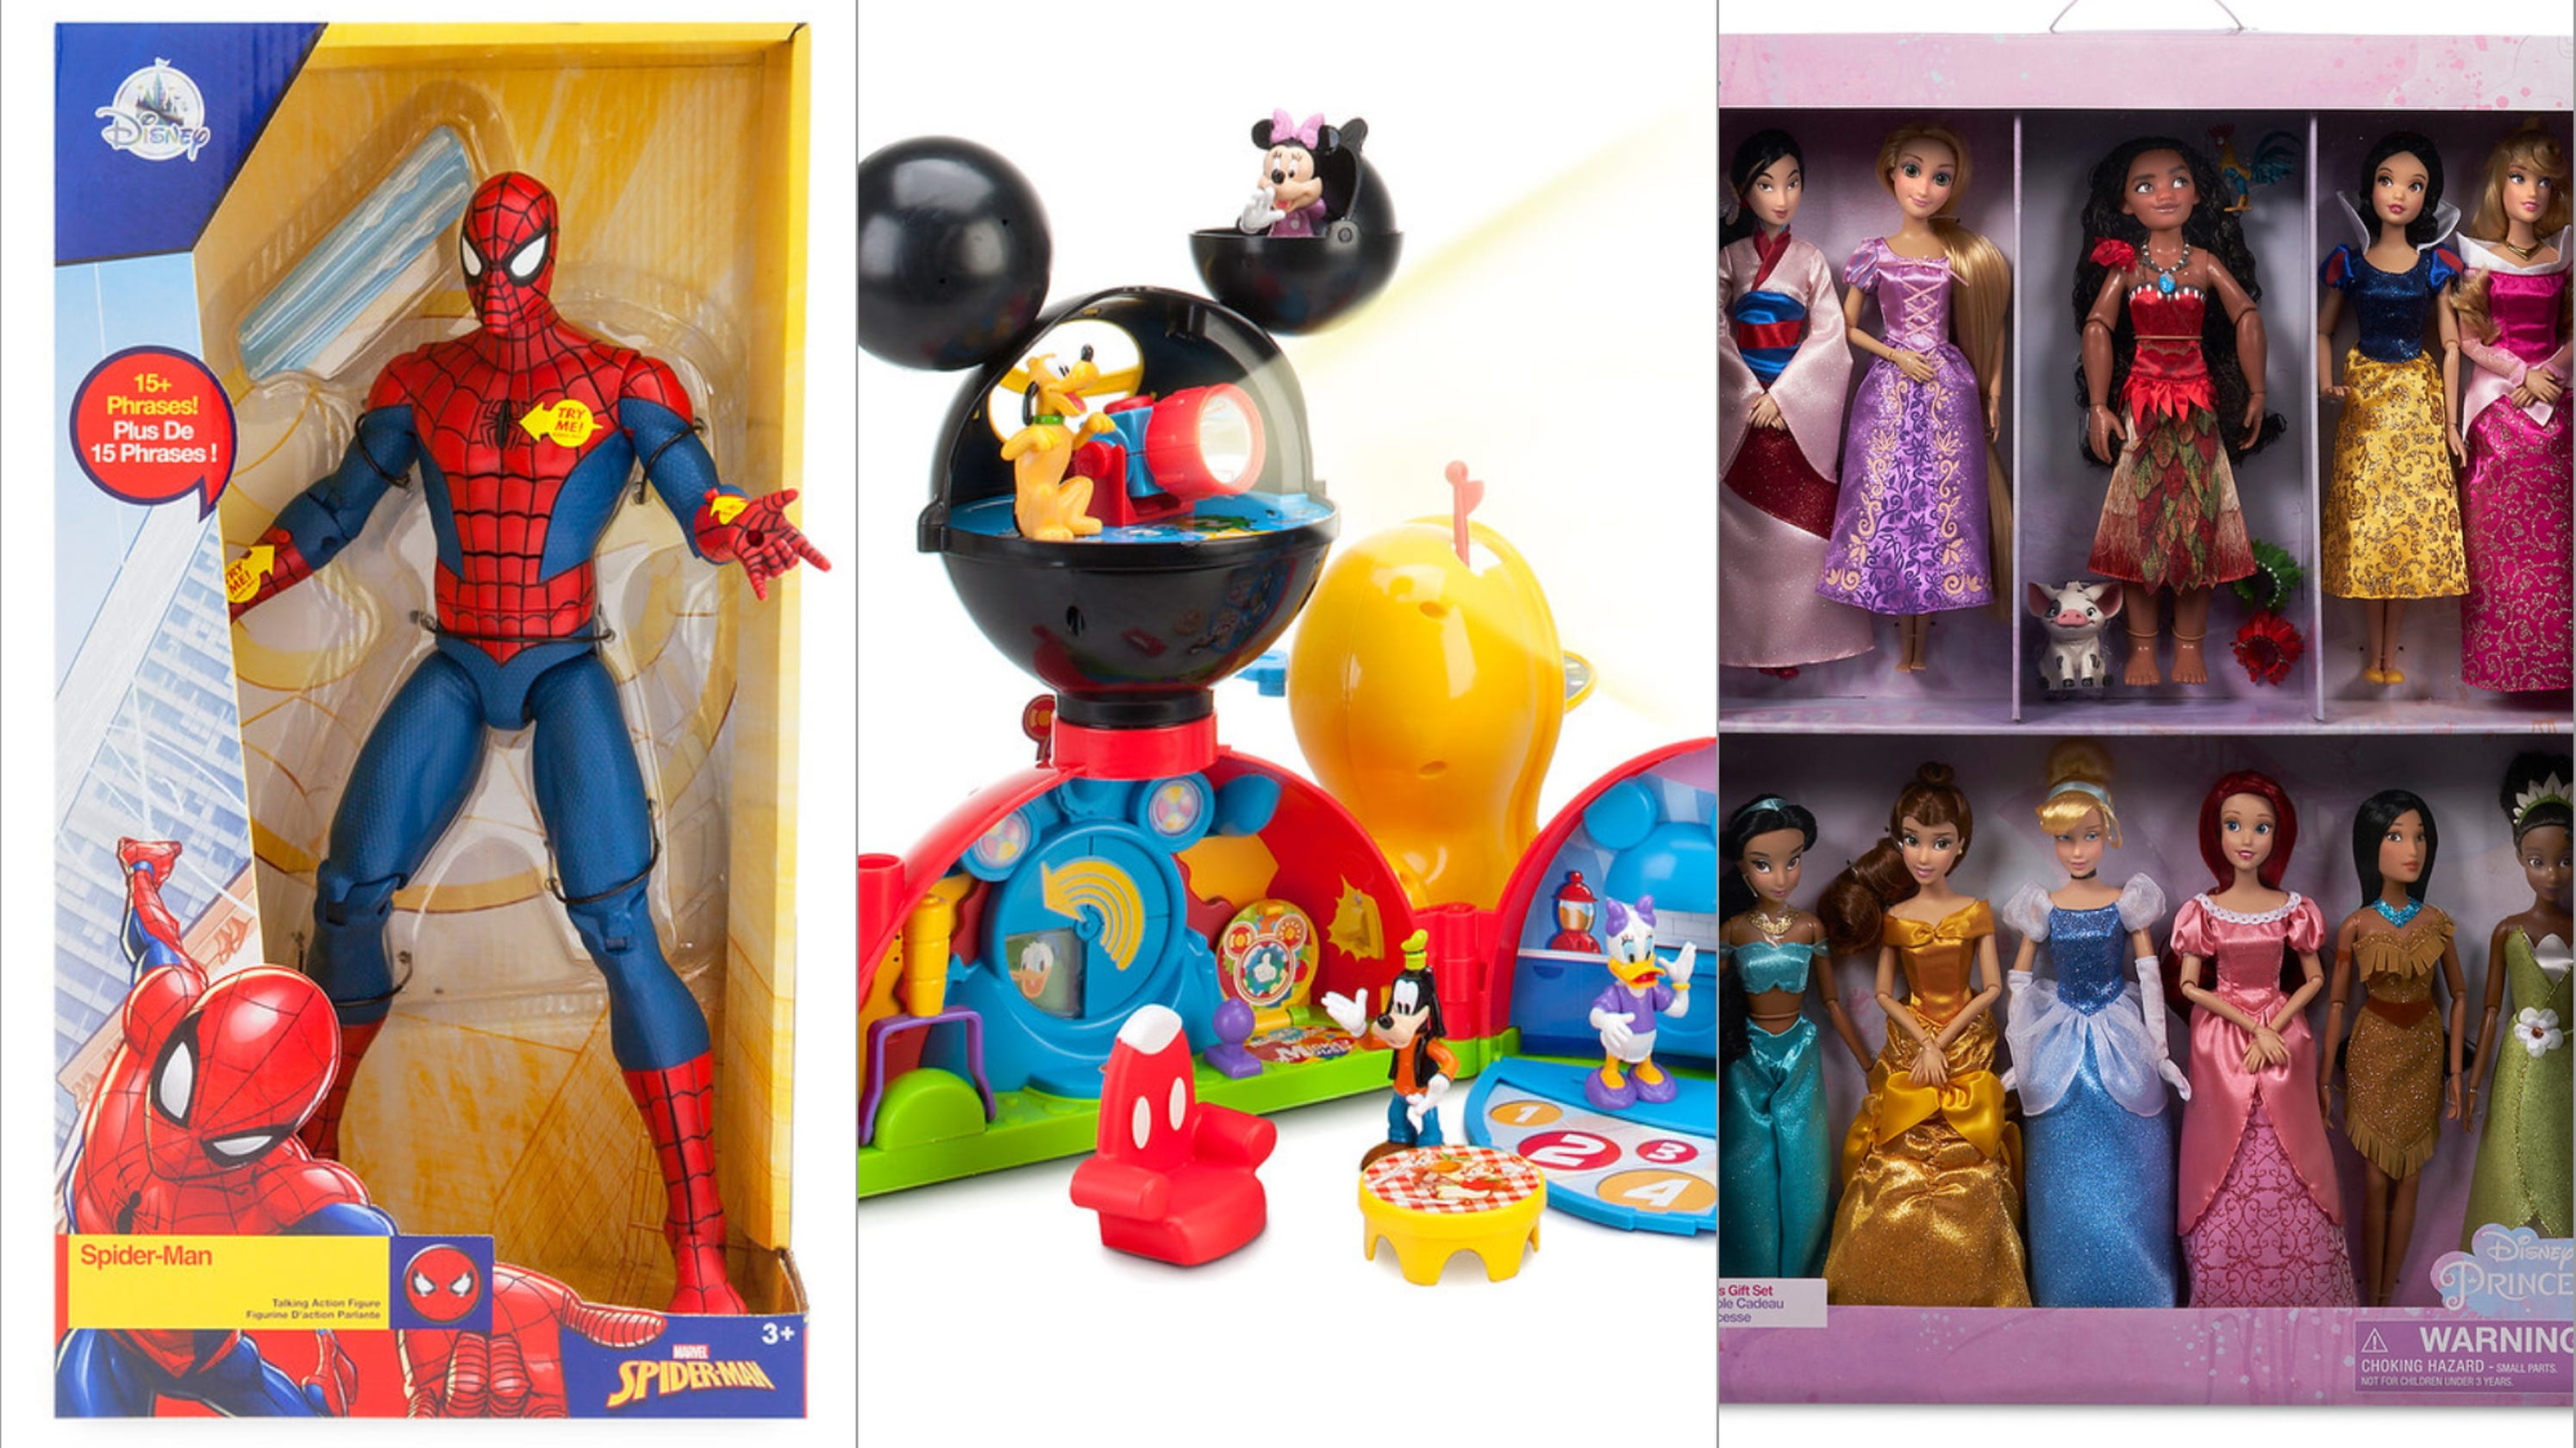 eafffd0ba Exclusive first look at Disney's Top 15 Toys of 2018, fun toys for the  holidays